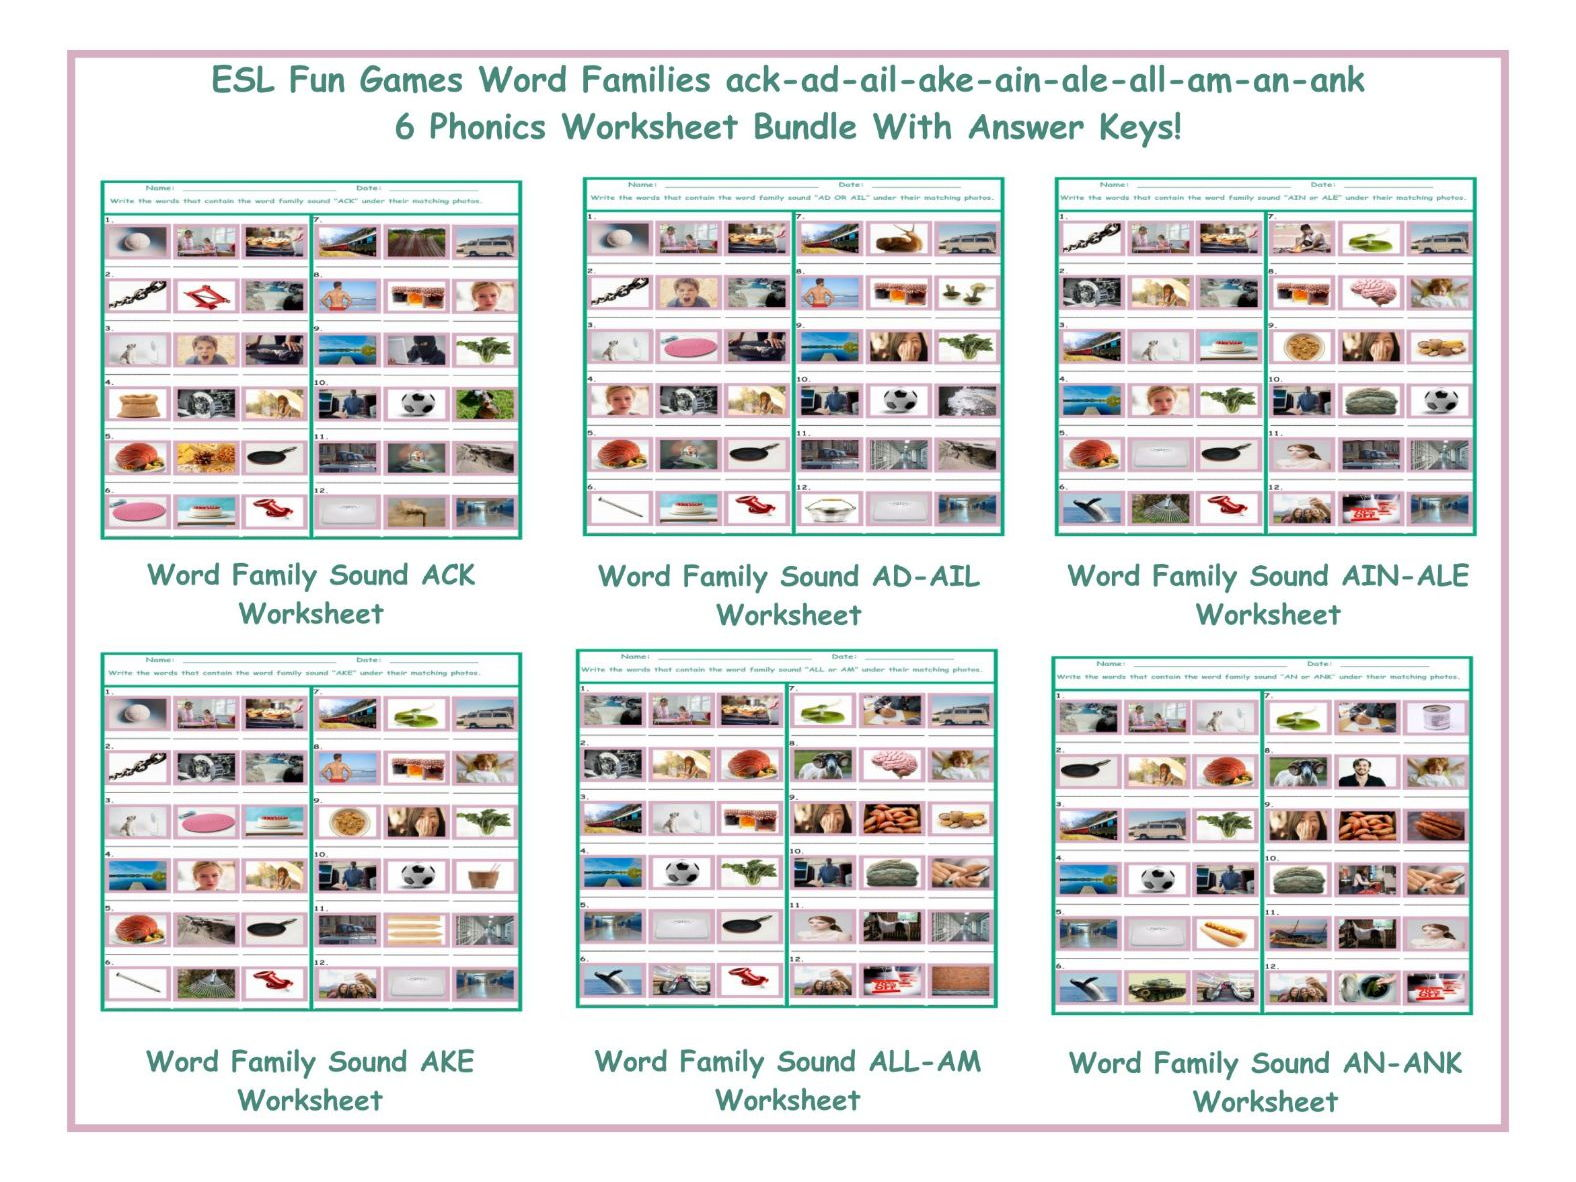 worksheet Word Families Worksheet word families ack ad ail ake ain ale all am an ank six game bundle by eslfungames teaching resources tes